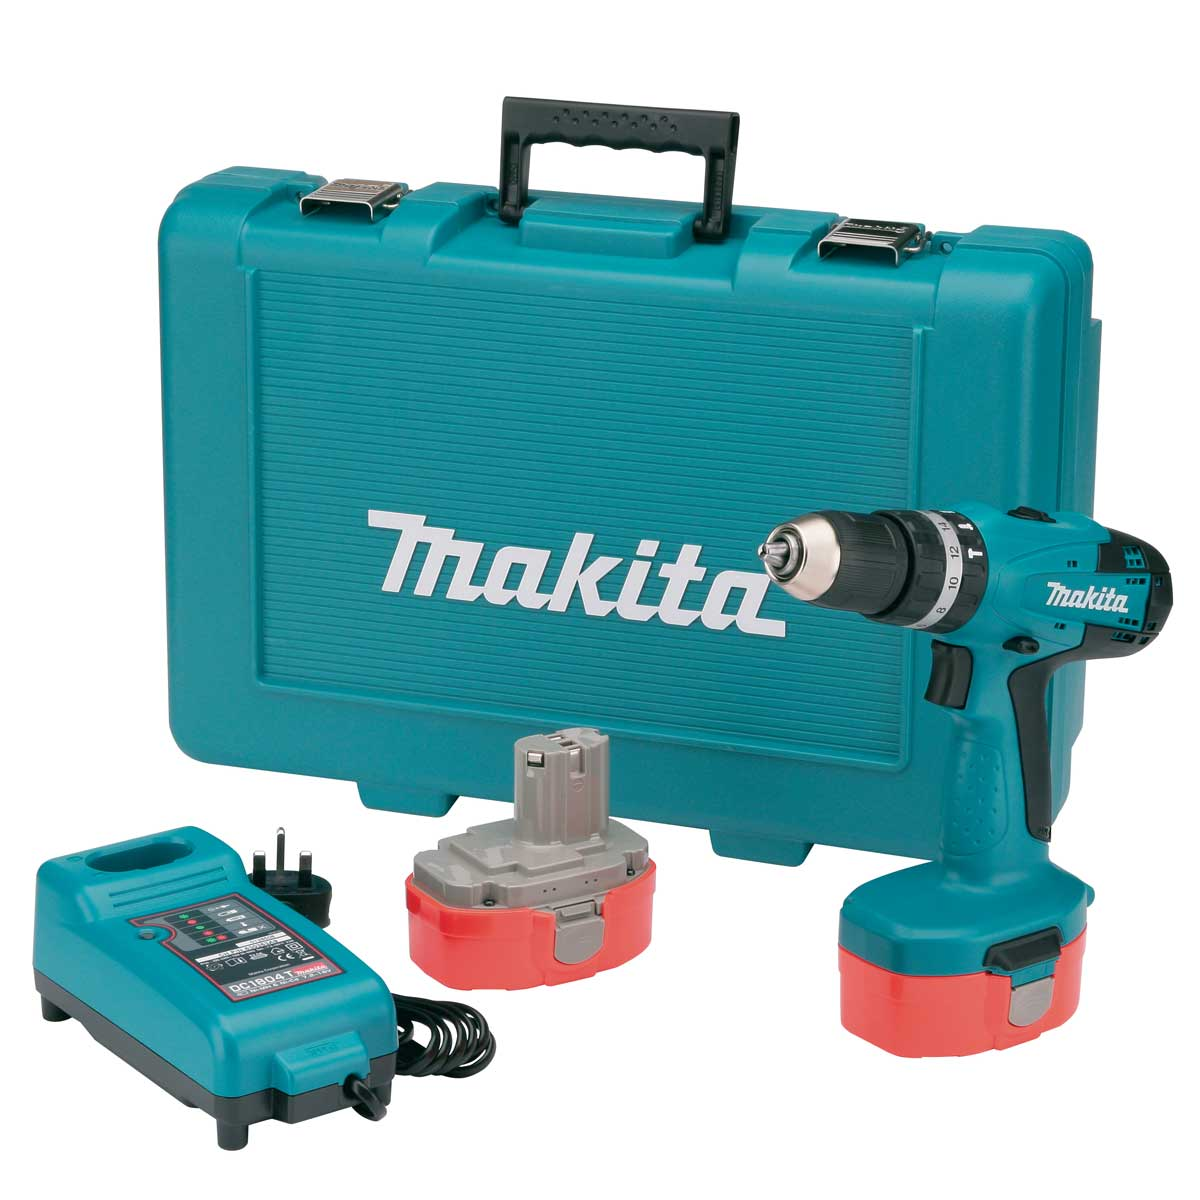 Rebuilding Makita Power Tool Battery Instructions ...